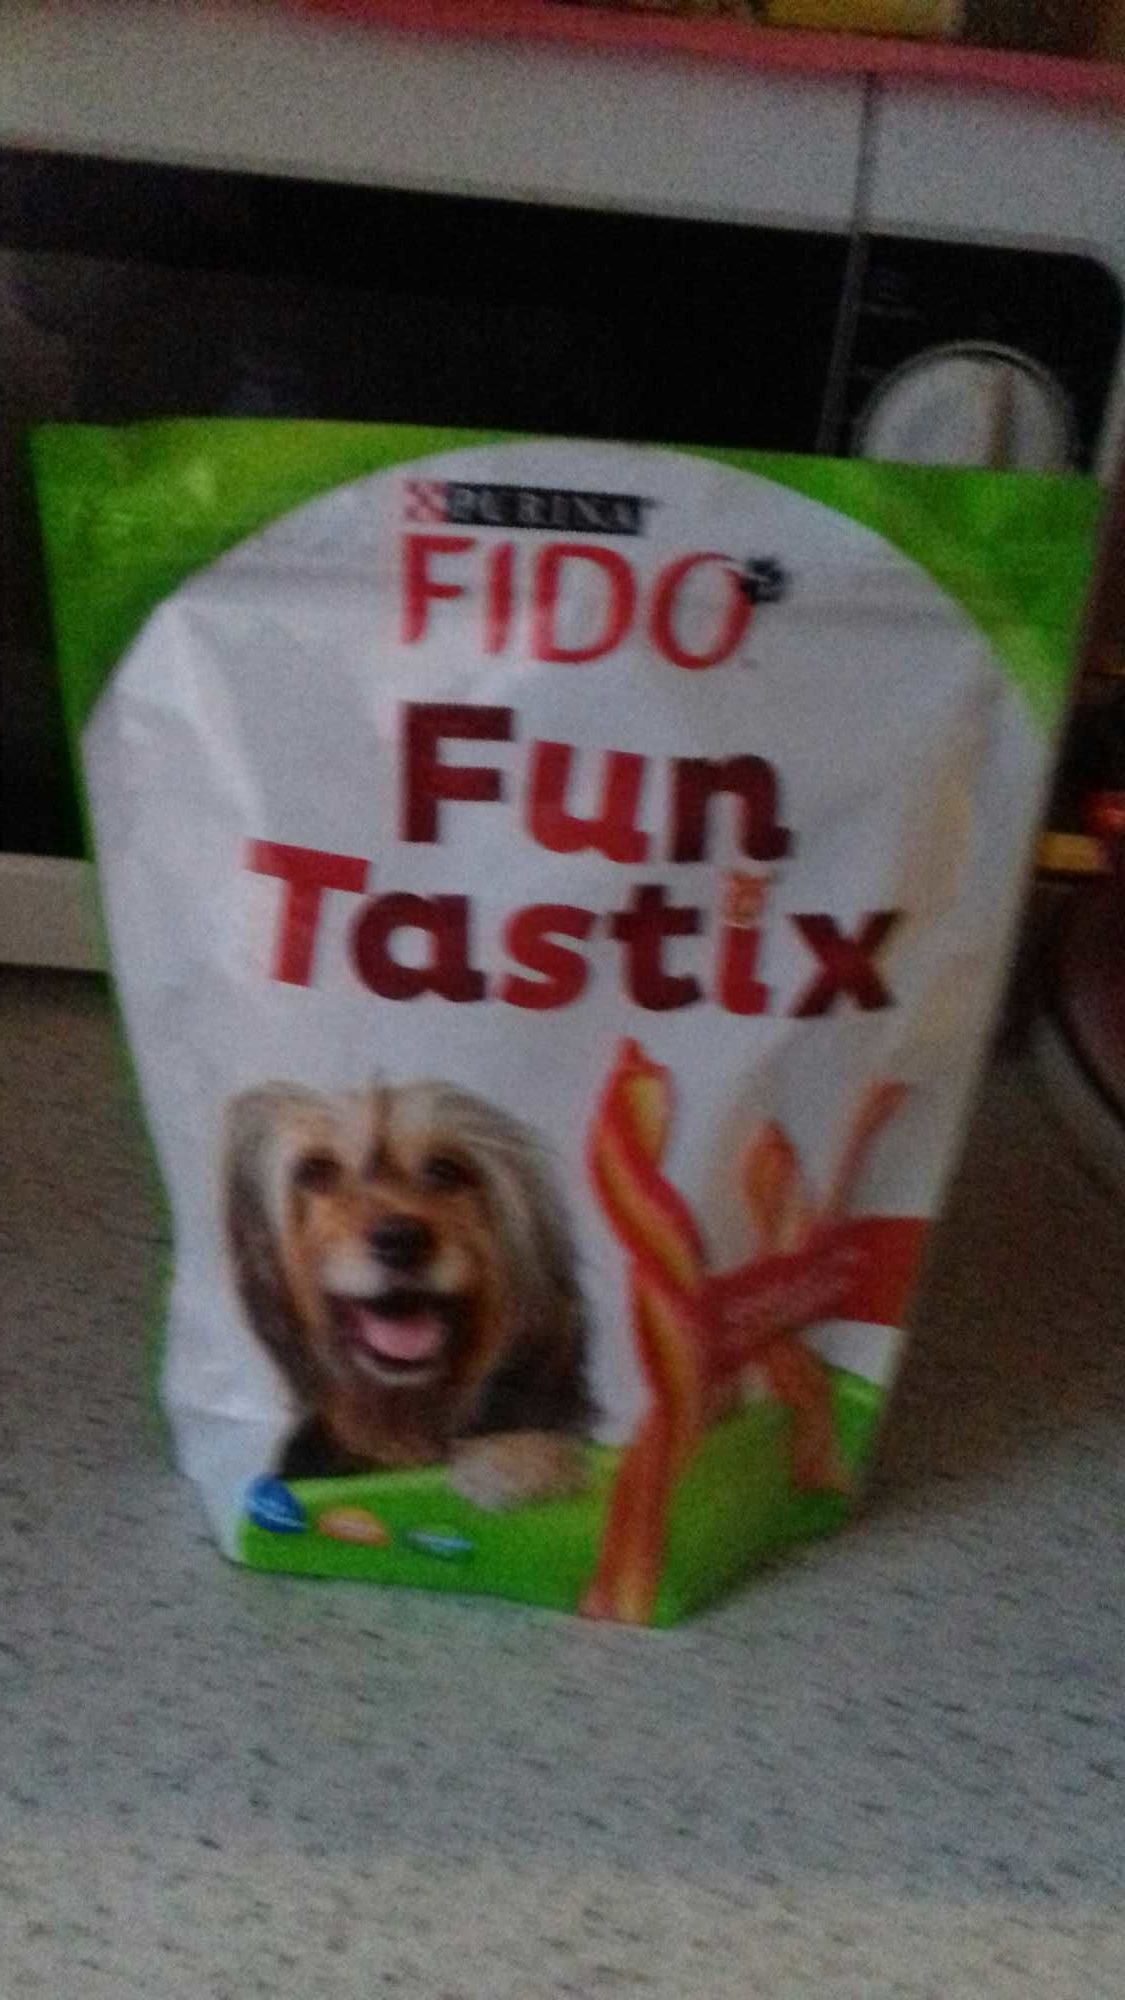 150G Fun Tastix Jambon / Fromage Fido - Product